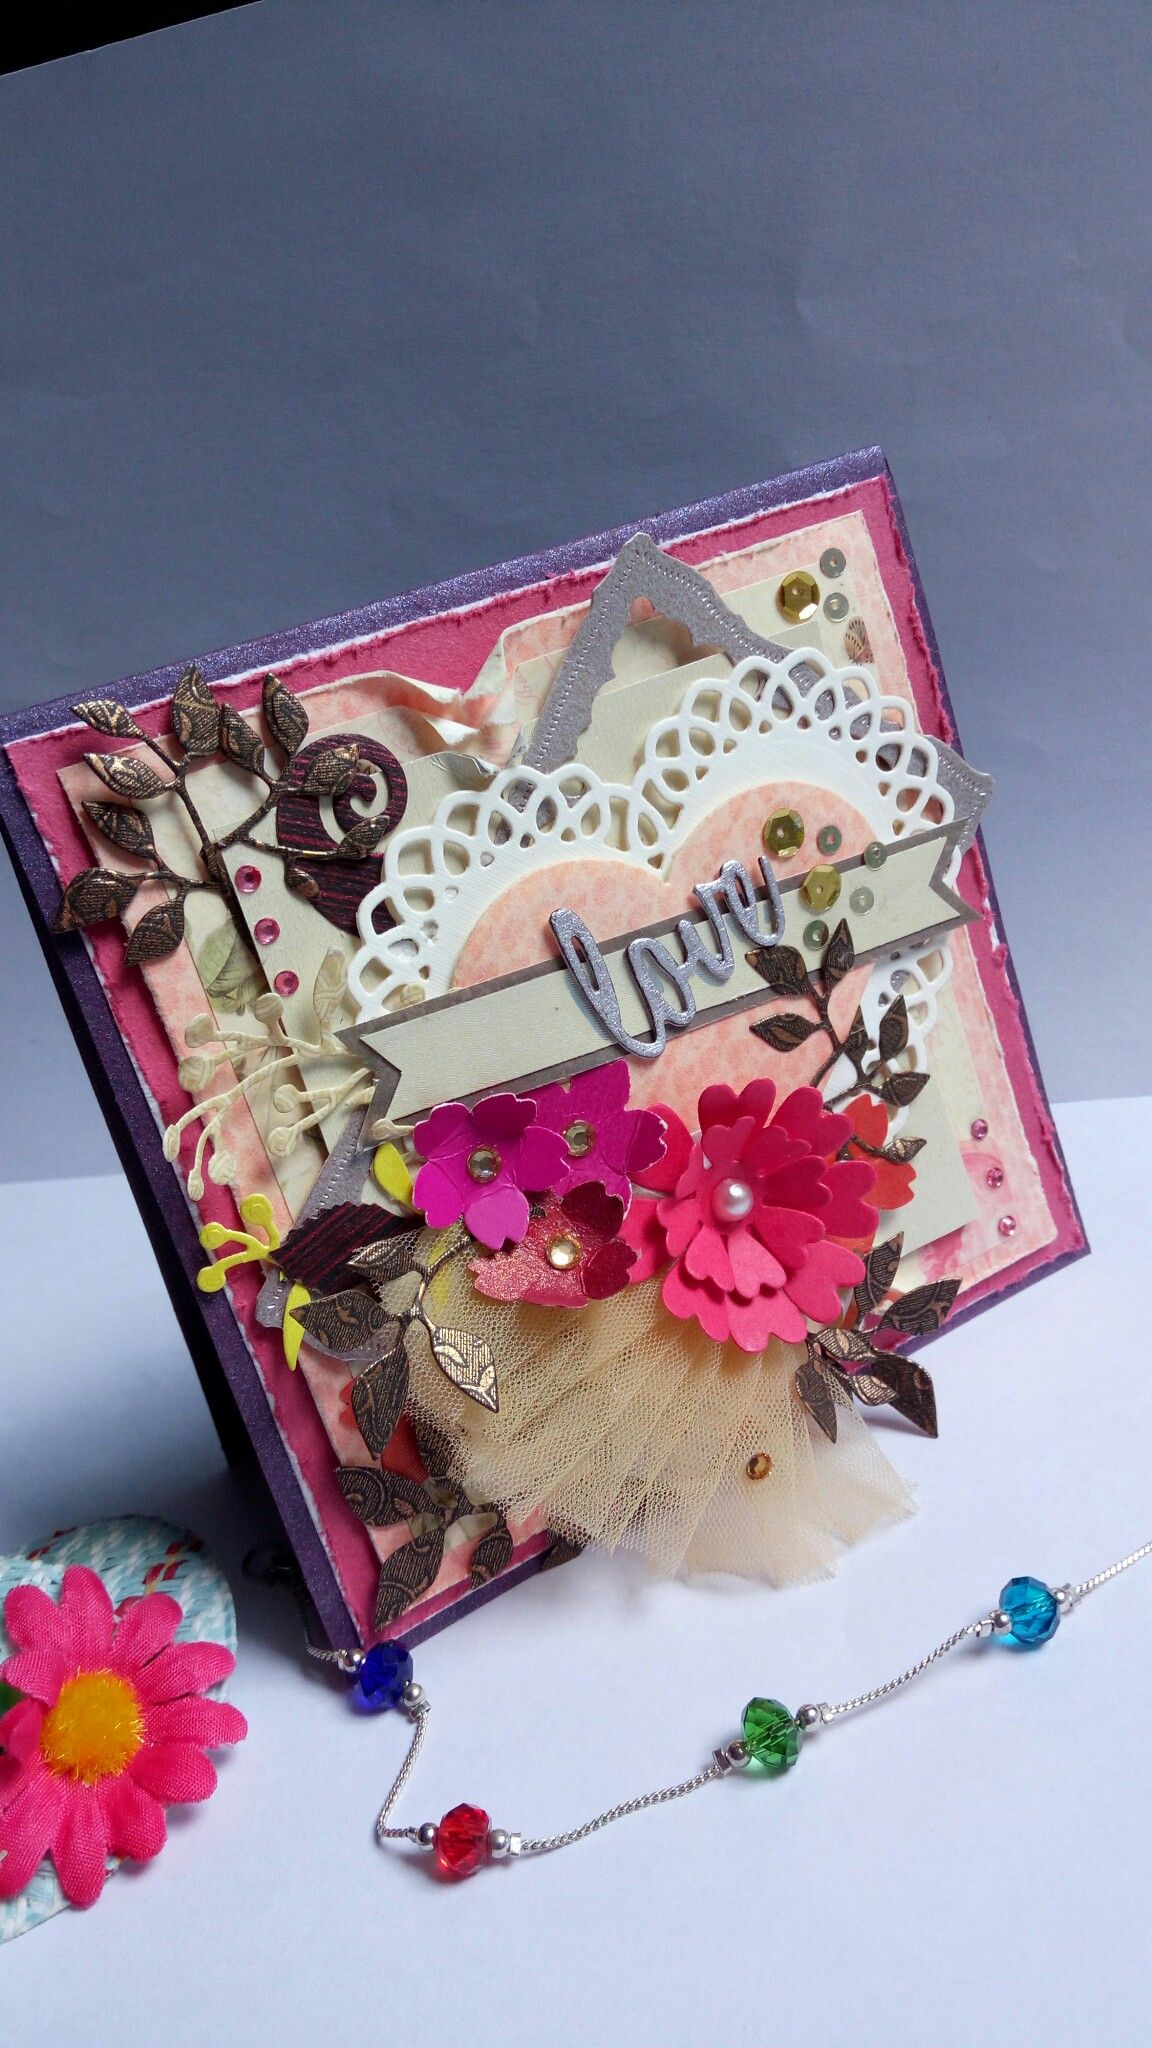 Pin by neha gaur on paper magic neha creations pinterest paper magic greeting card shabby chic card sentiments congratulations card shabby chic style m4hsunfo